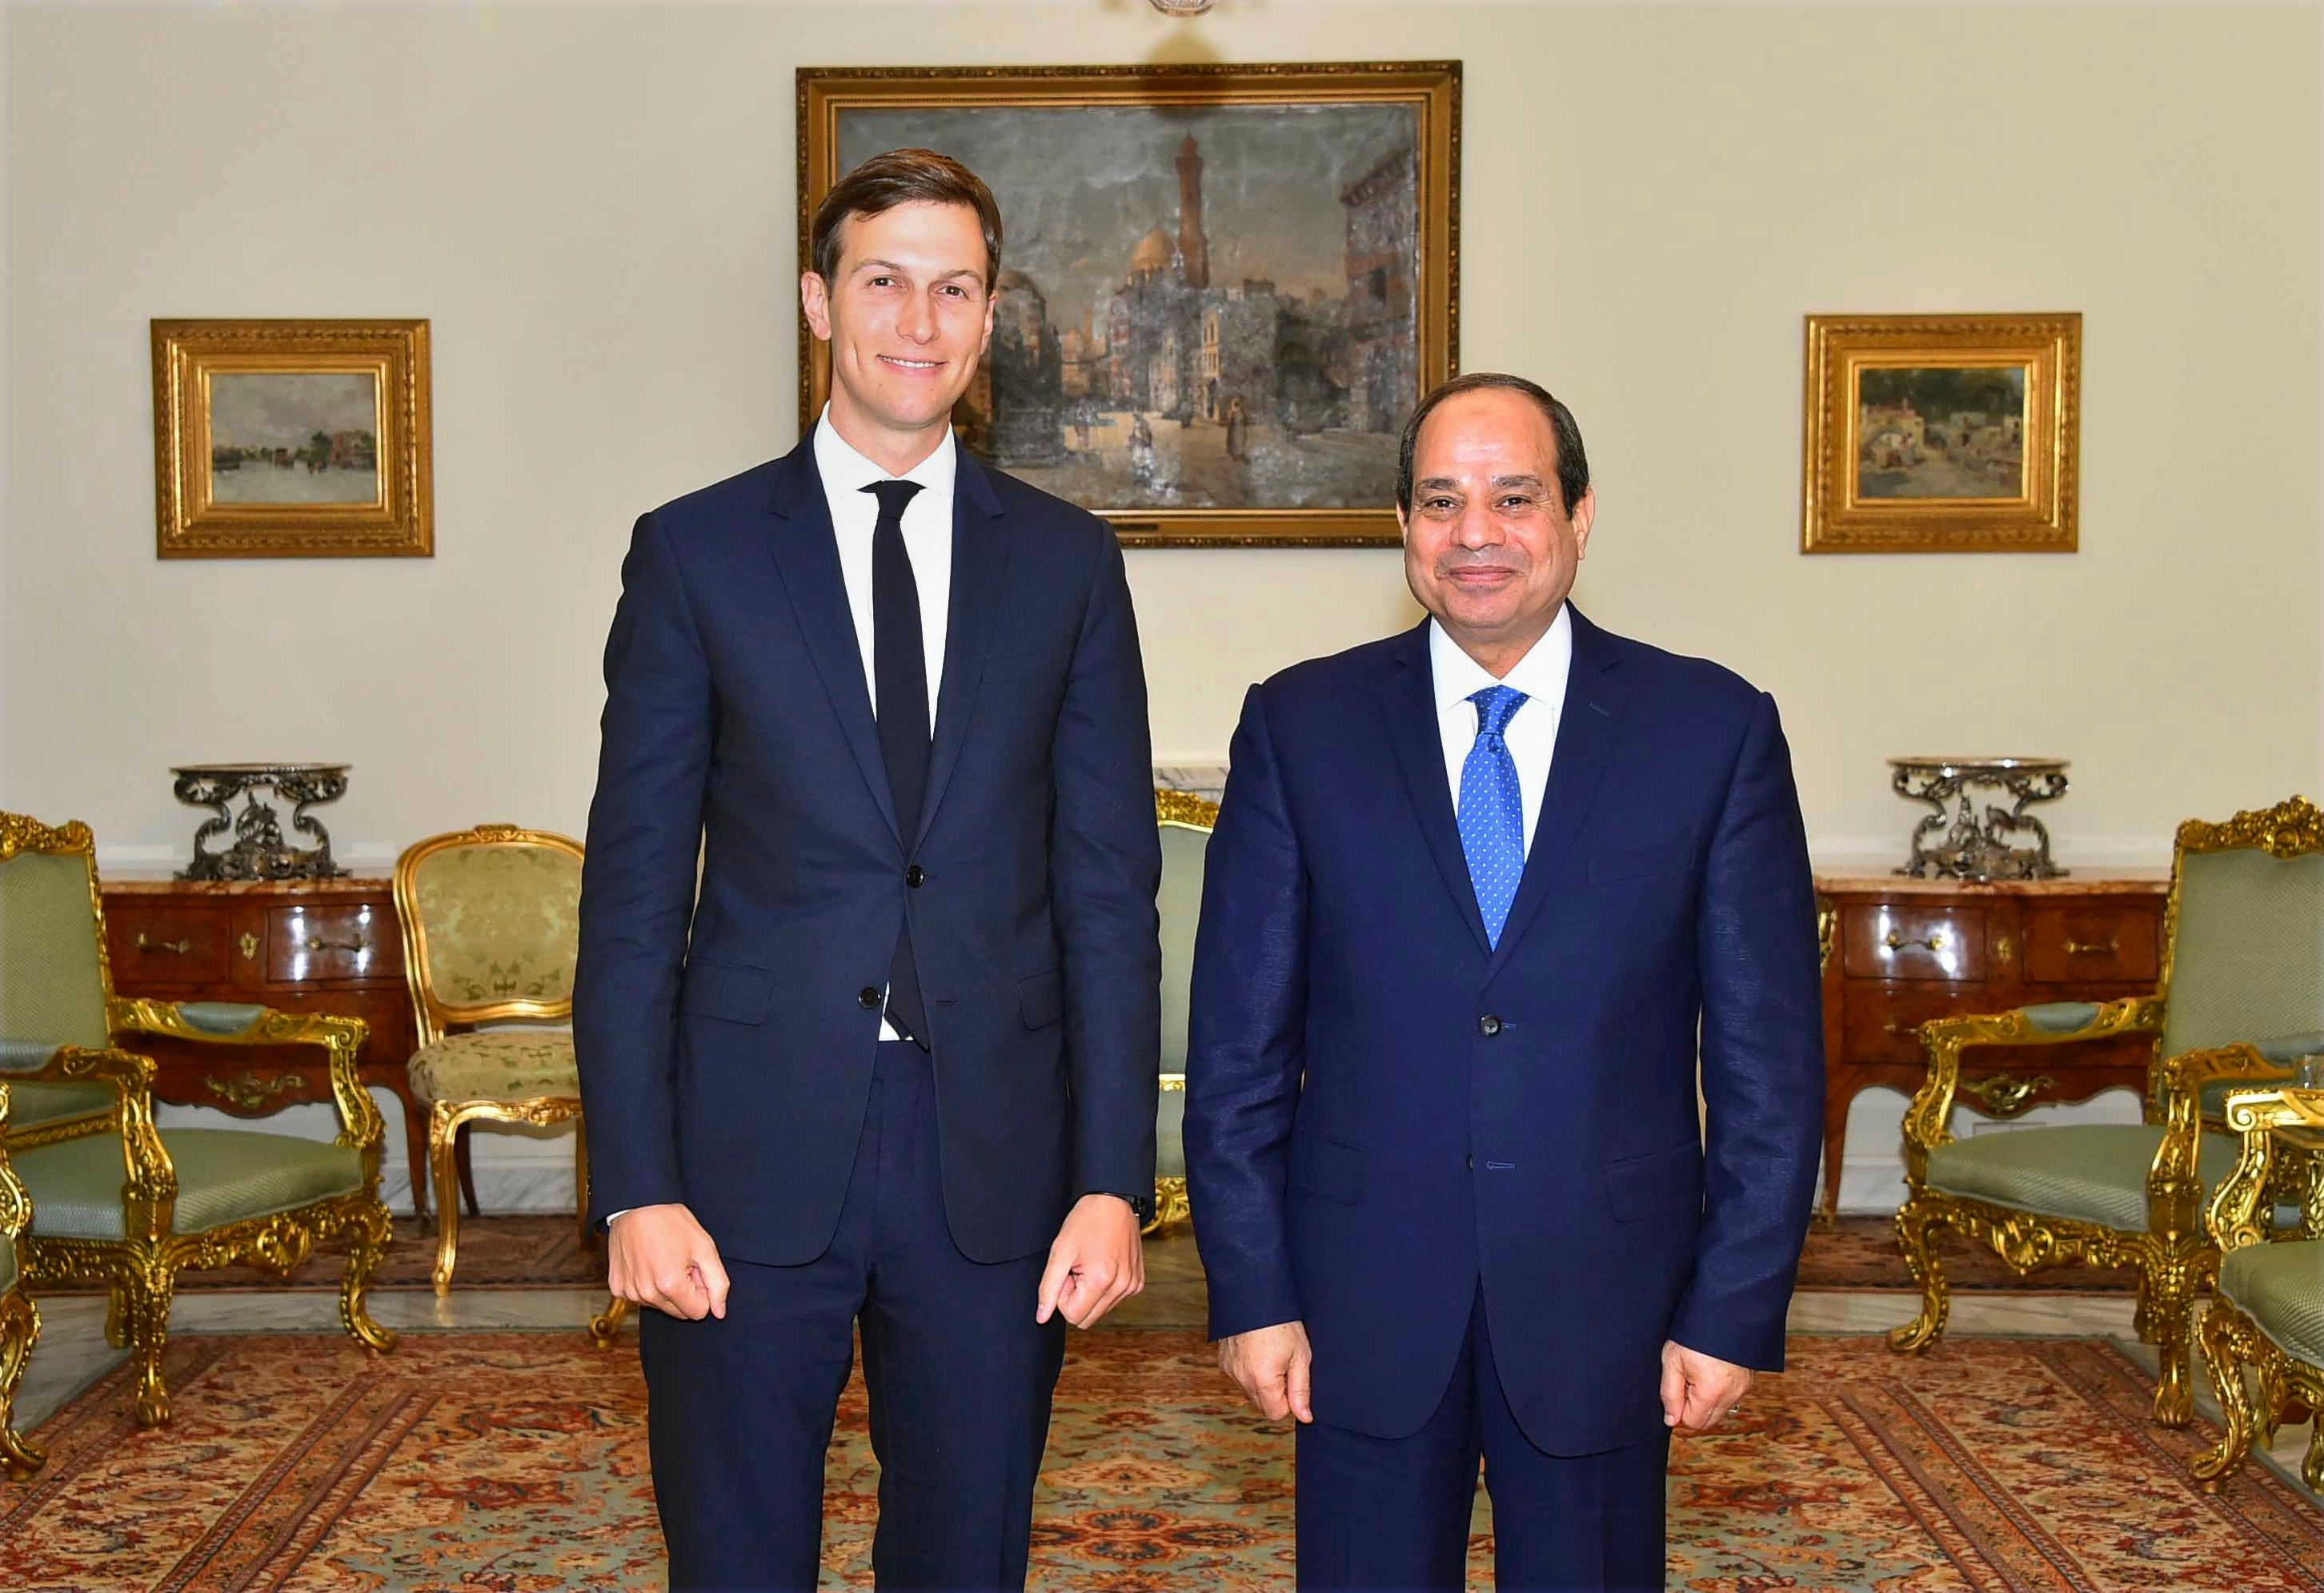 In this photo provided by Egypt's state news agency, MENA, Egypt's President Abdel-Fattah el-Sissi, right, poses for a photo with White House adviser Jared Kushner, in Cairo, Egypt, Wednesday, Aug. 23, 2017. El-Sissi and Egypt's foreign minister have met with Kushner just hours after the Trump administration cut or delayed hundreds of millions of dollars in aid to Cairo over human rights concerns. Kushner, who is also President Donald Trump's son-in-law, was in Cairo as part of a Middle East tour aimed at exploring ways to revive Israeli-Palestinian peace talks, which last collapsed in 2014. (MENA via AP)